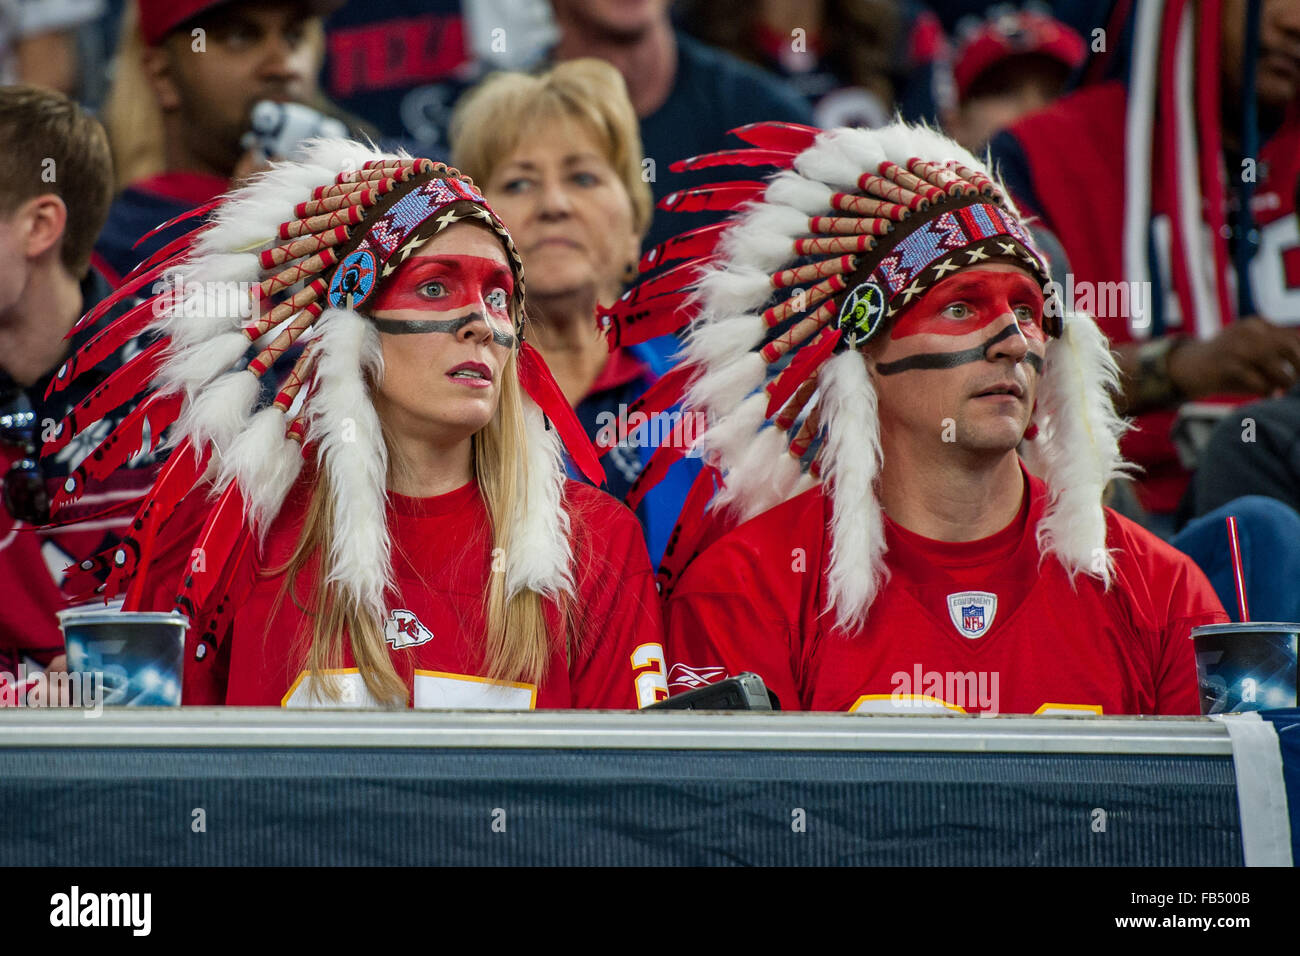 Houston, Texas, USA. 9th Jan, 2016. Kansas City Chiefs fans are dressed in Native American headresses during the Stock Photo